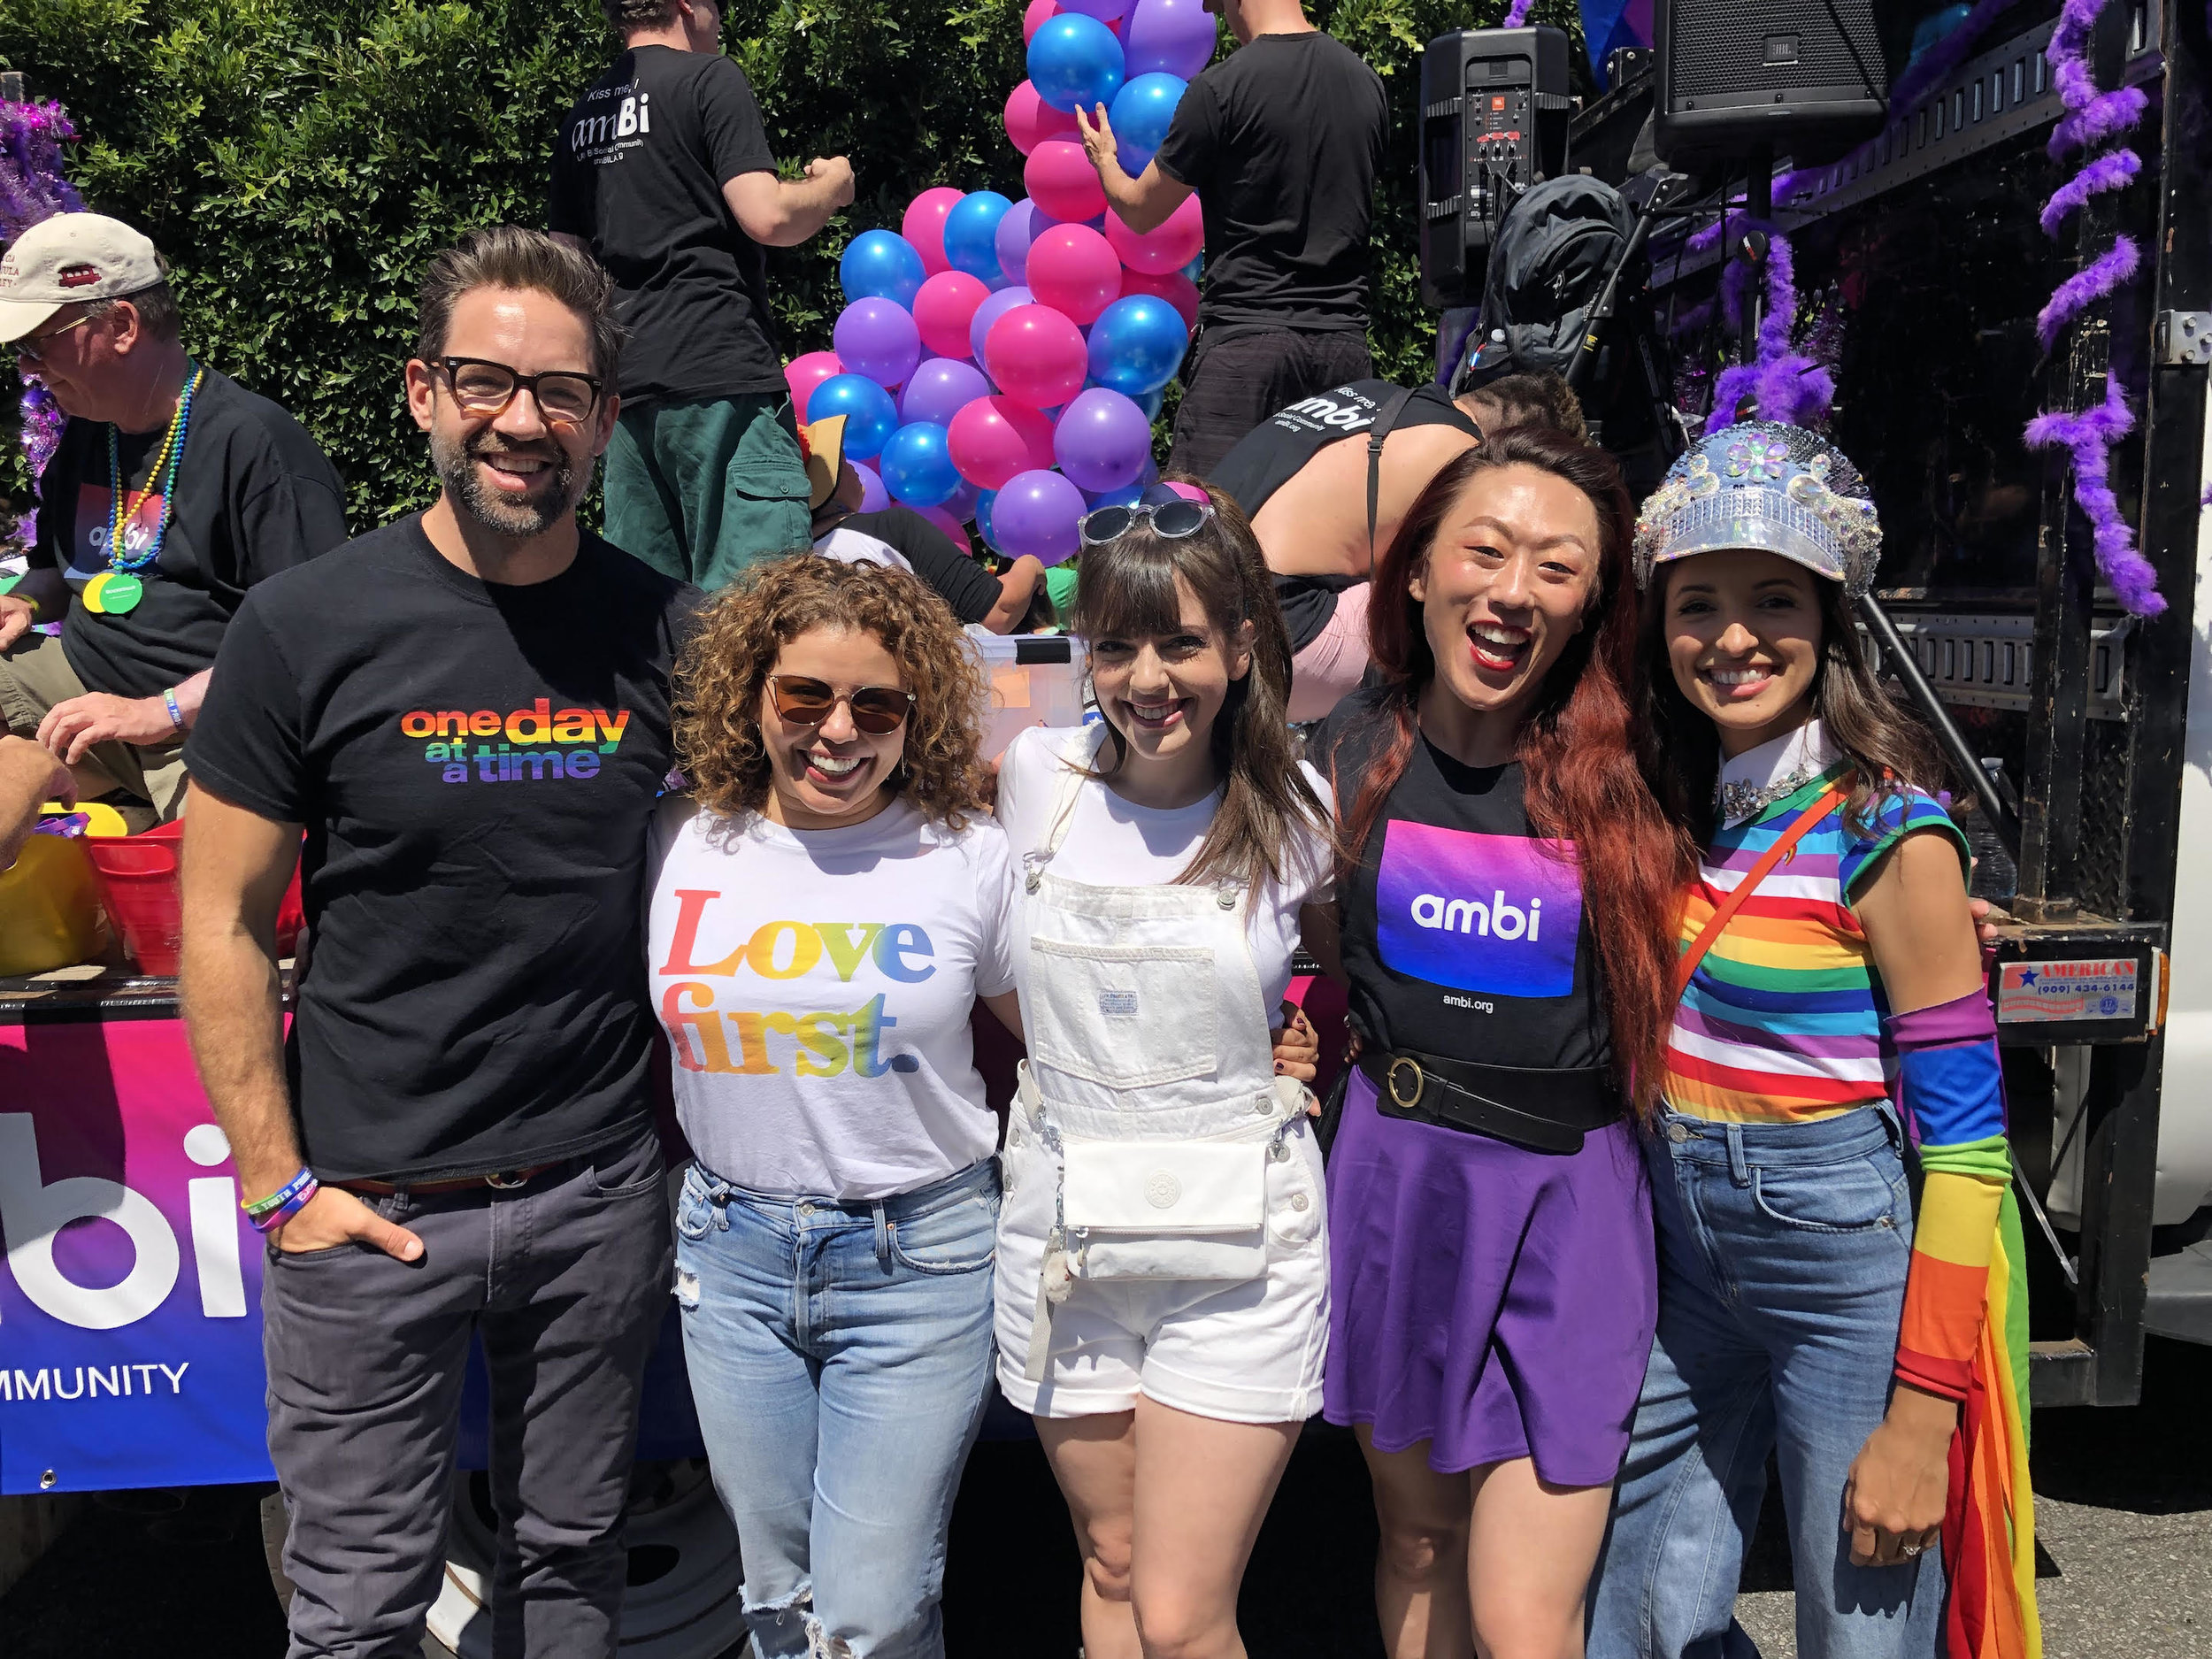 The cast of ODAAT joins amBi. From left: Todd Grinnell, Justina Machado, Sheridan Pierce, Nicky, Endres, and India de Beaufort